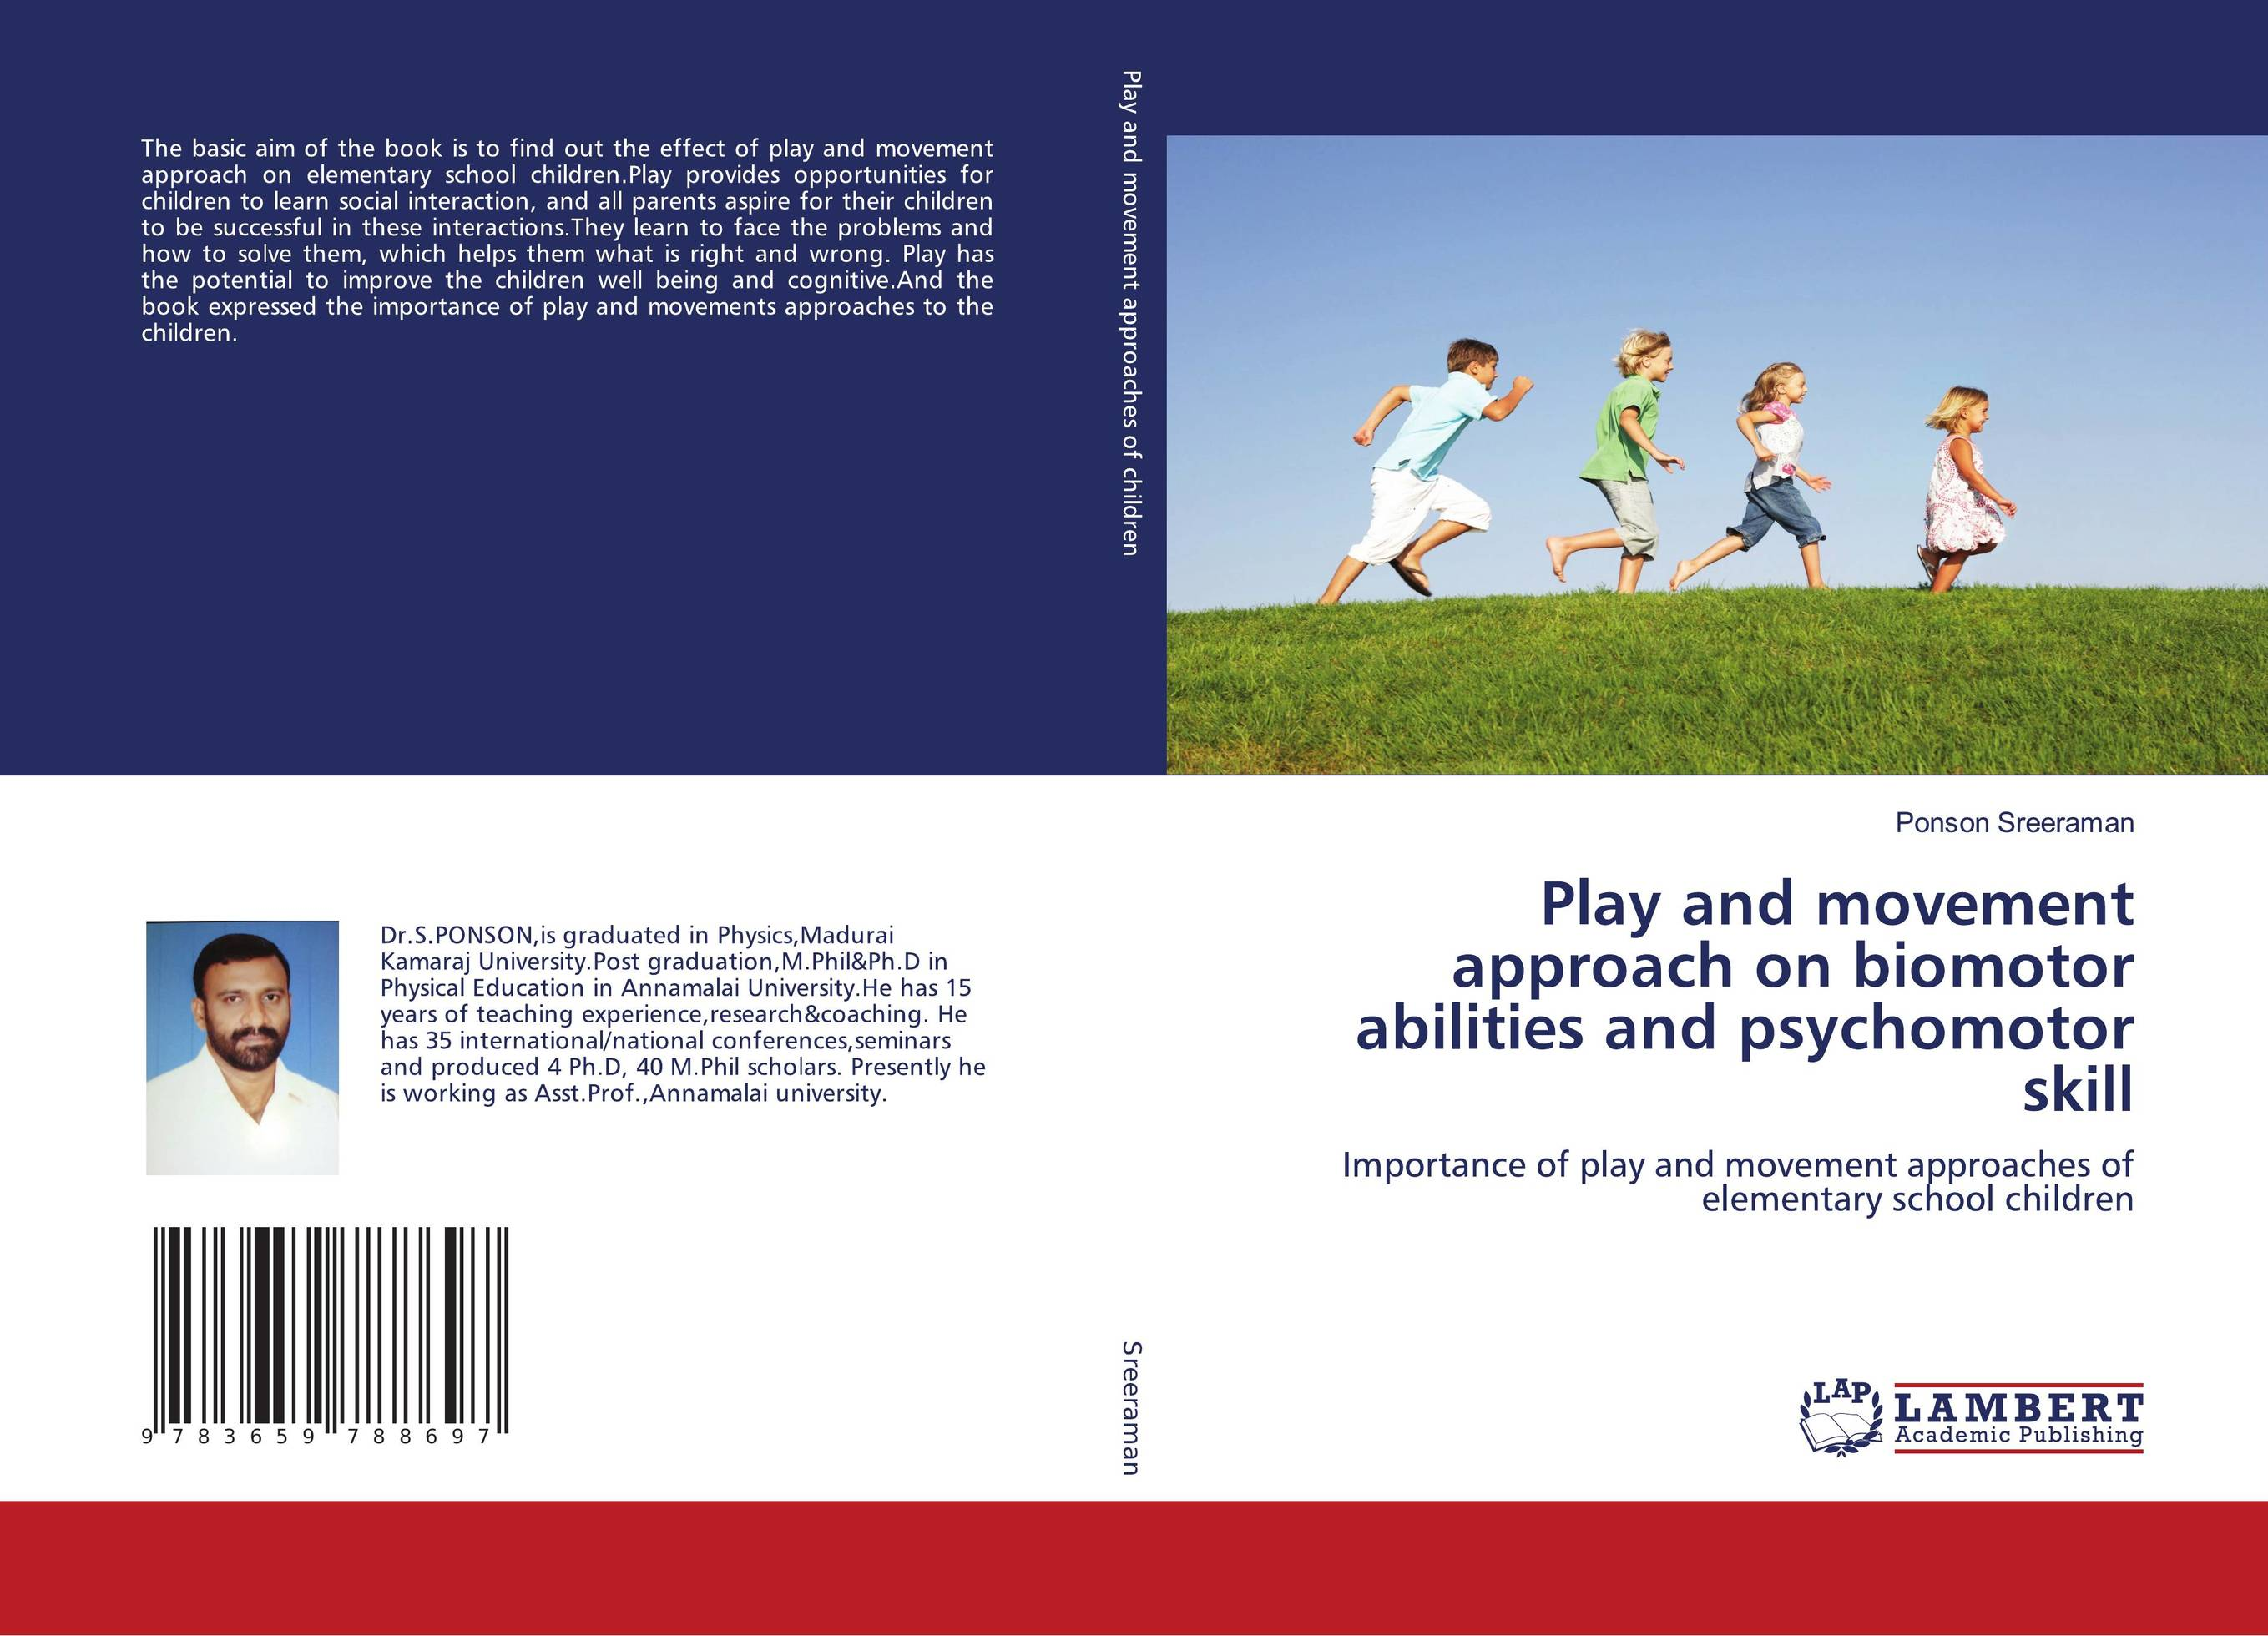 importance of play Recreational deprivation has been linked to criminality, obesity and declining creativity rob parr asks why having fun is not taken more seriously.